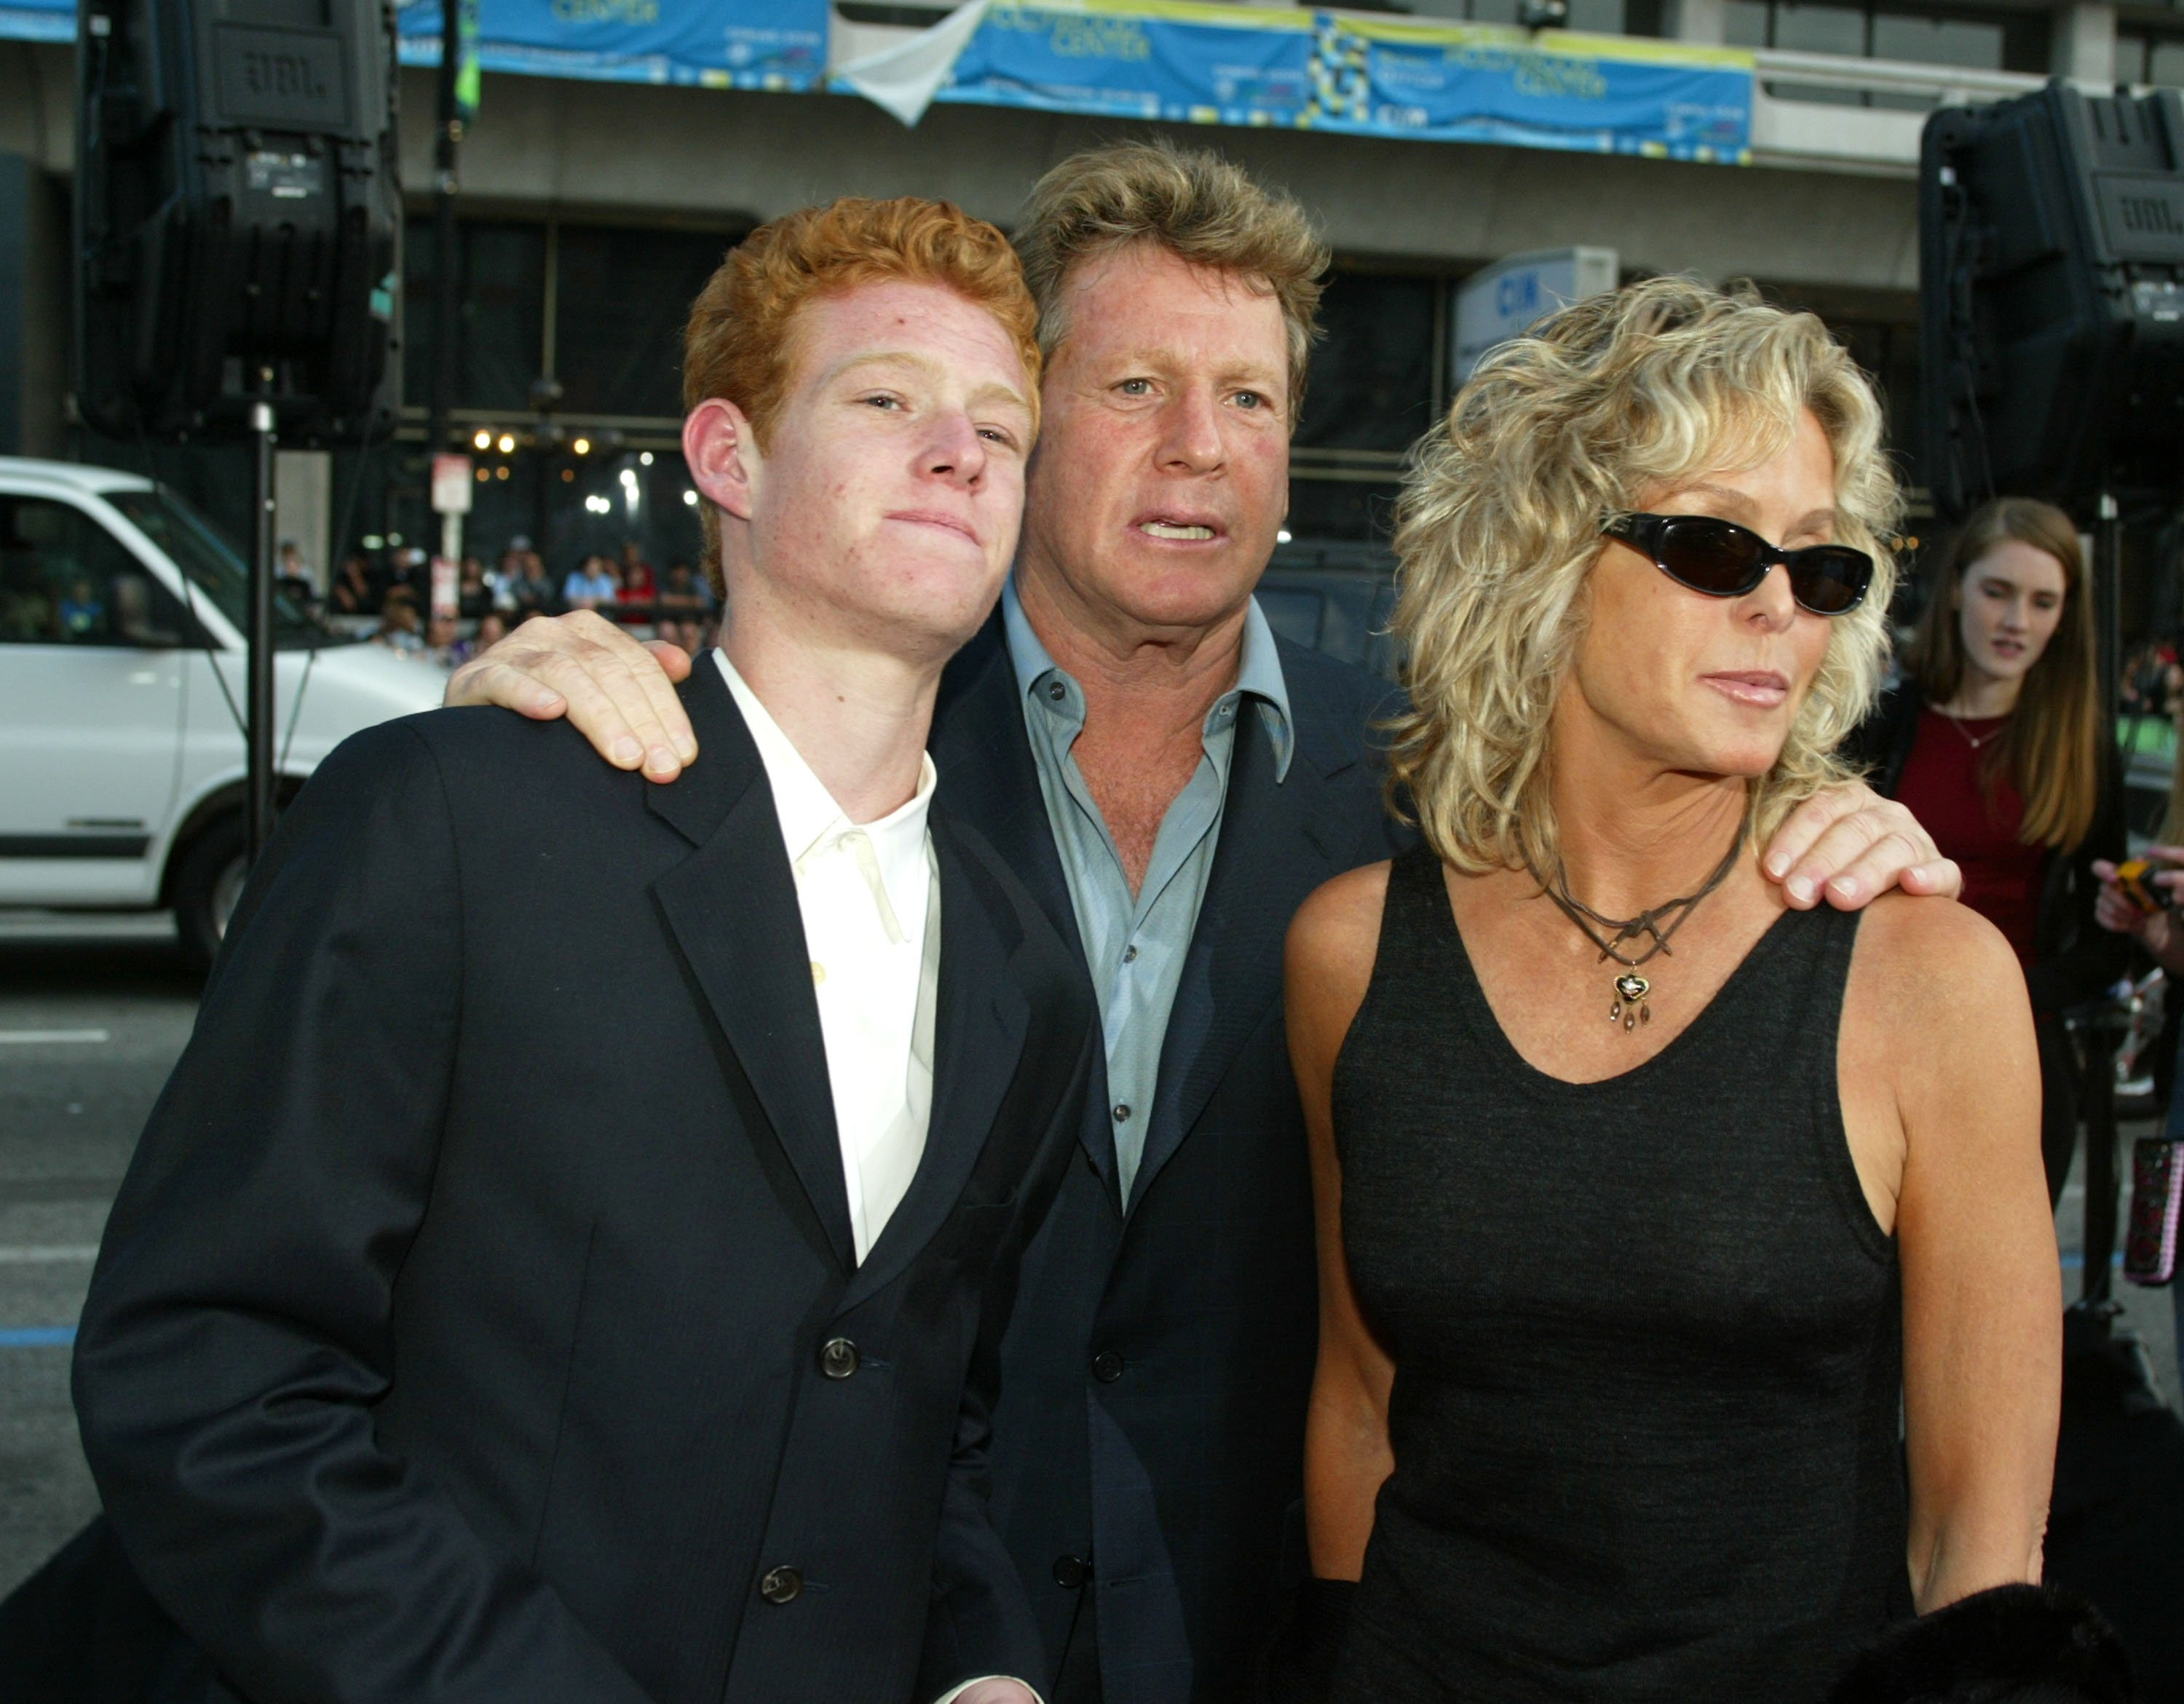 """Ryan O'Neal and Farrah Fawcett and their son Redmond at the premiere of """"Malibu's Most Wanted"""" on April 10, 2003, in Los Angeles, California. 